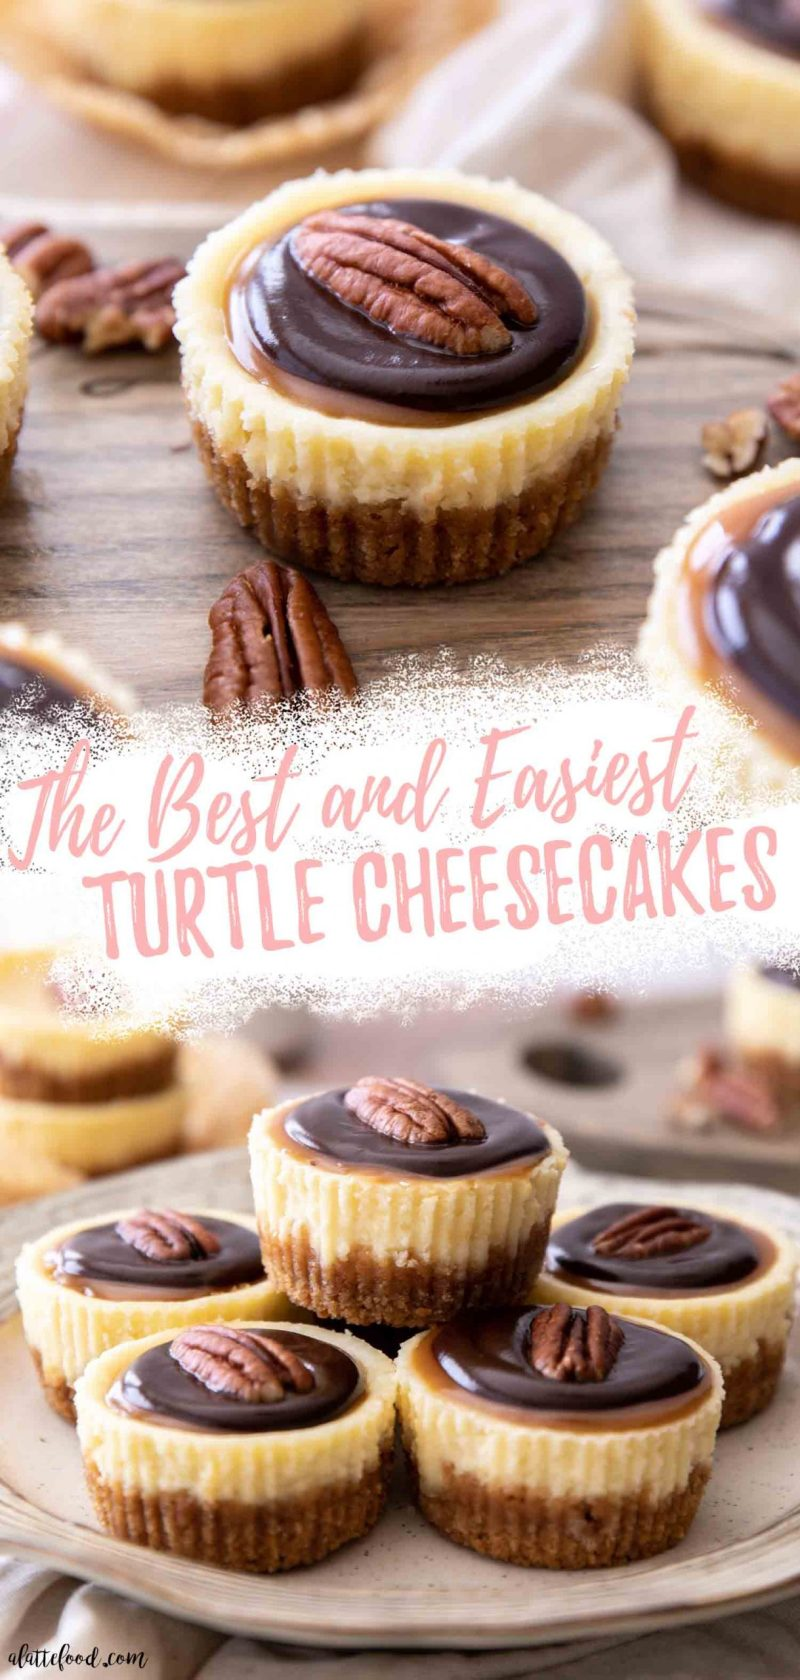 Mini Turtle Cheesecakes with caramel and chocolate collage with text